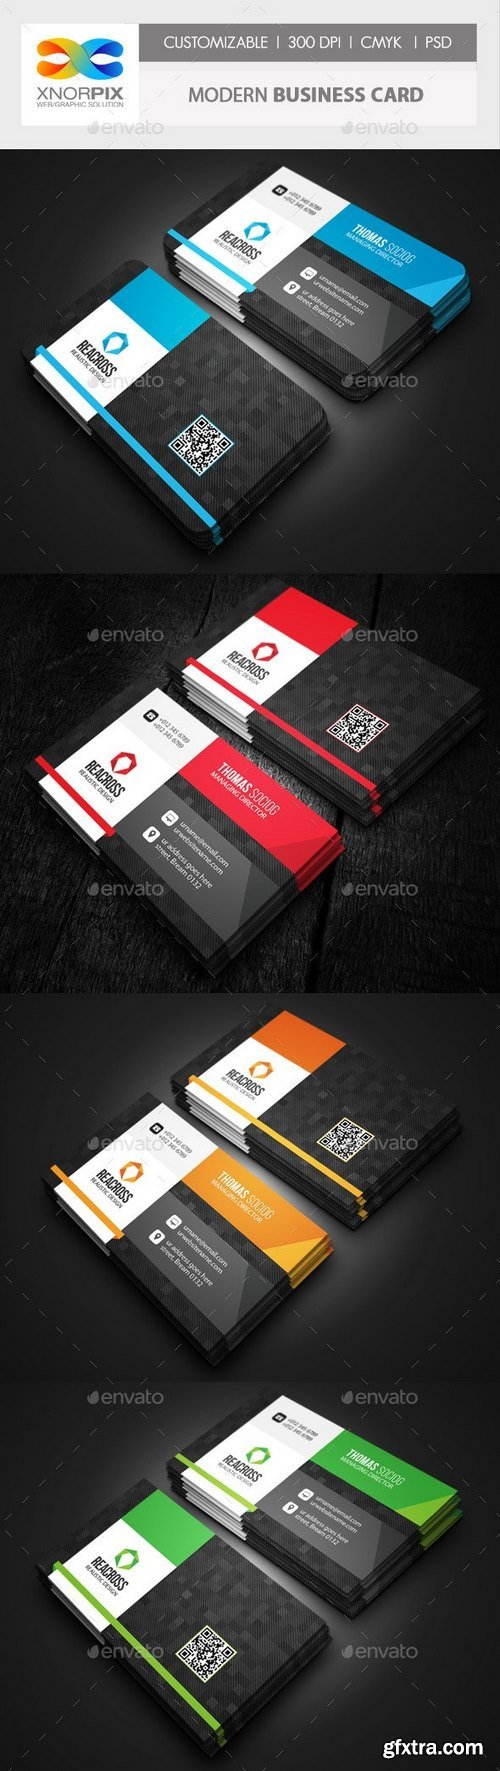 GraphicRiver - Modern Business Card 10282843